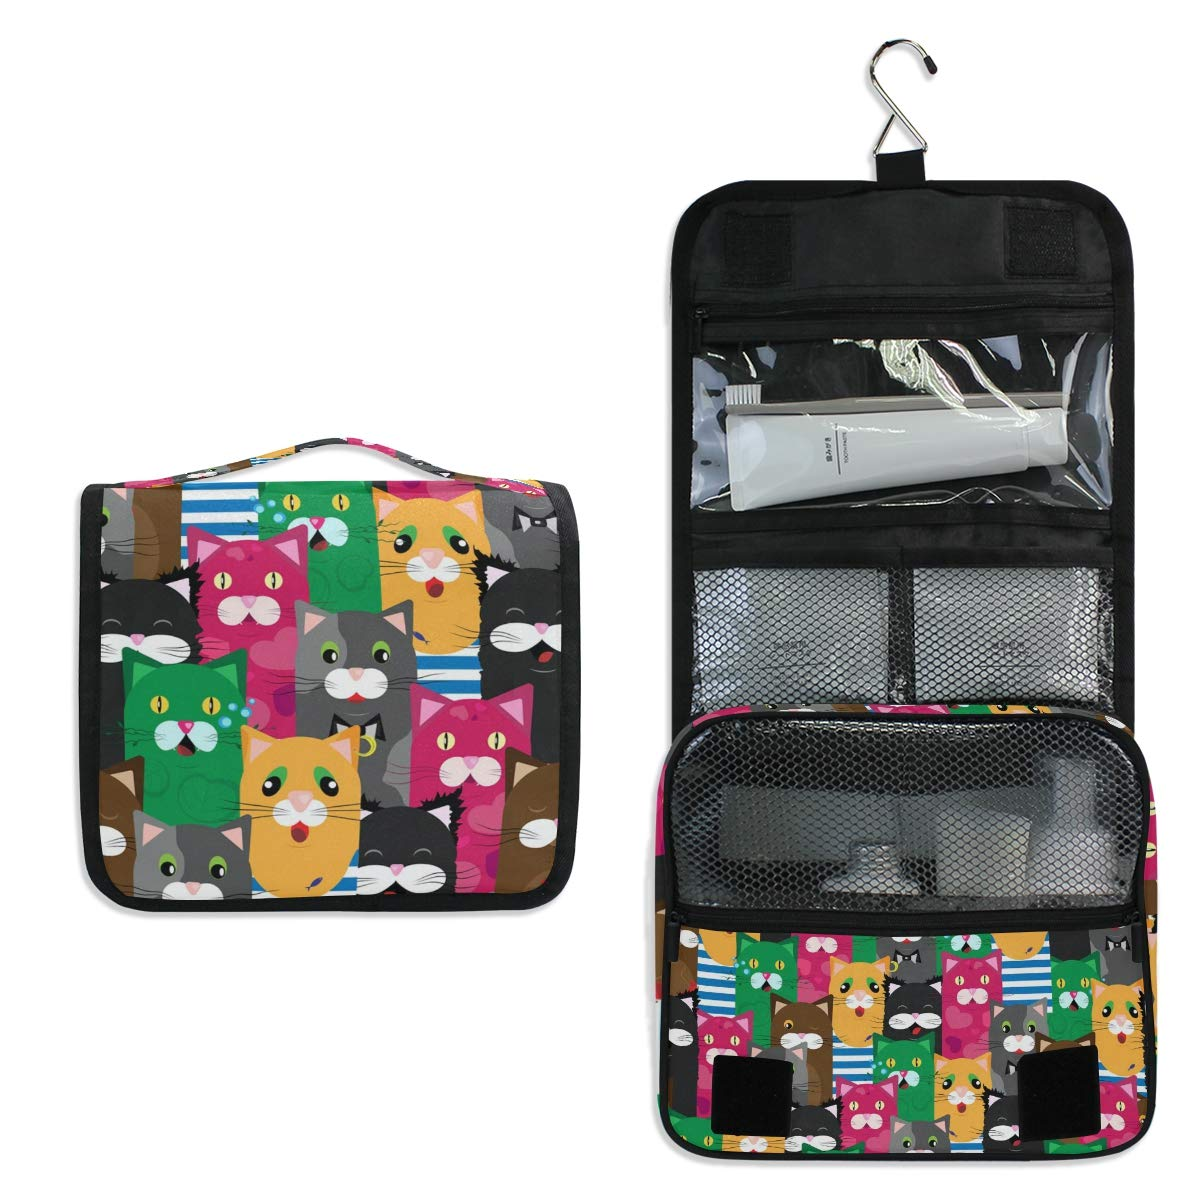 Hanging Travel Toiletry Bag - Cute Colored Cats Waterproof Cosmetic Bag Portable Makeup Pouch for Girls Men Women